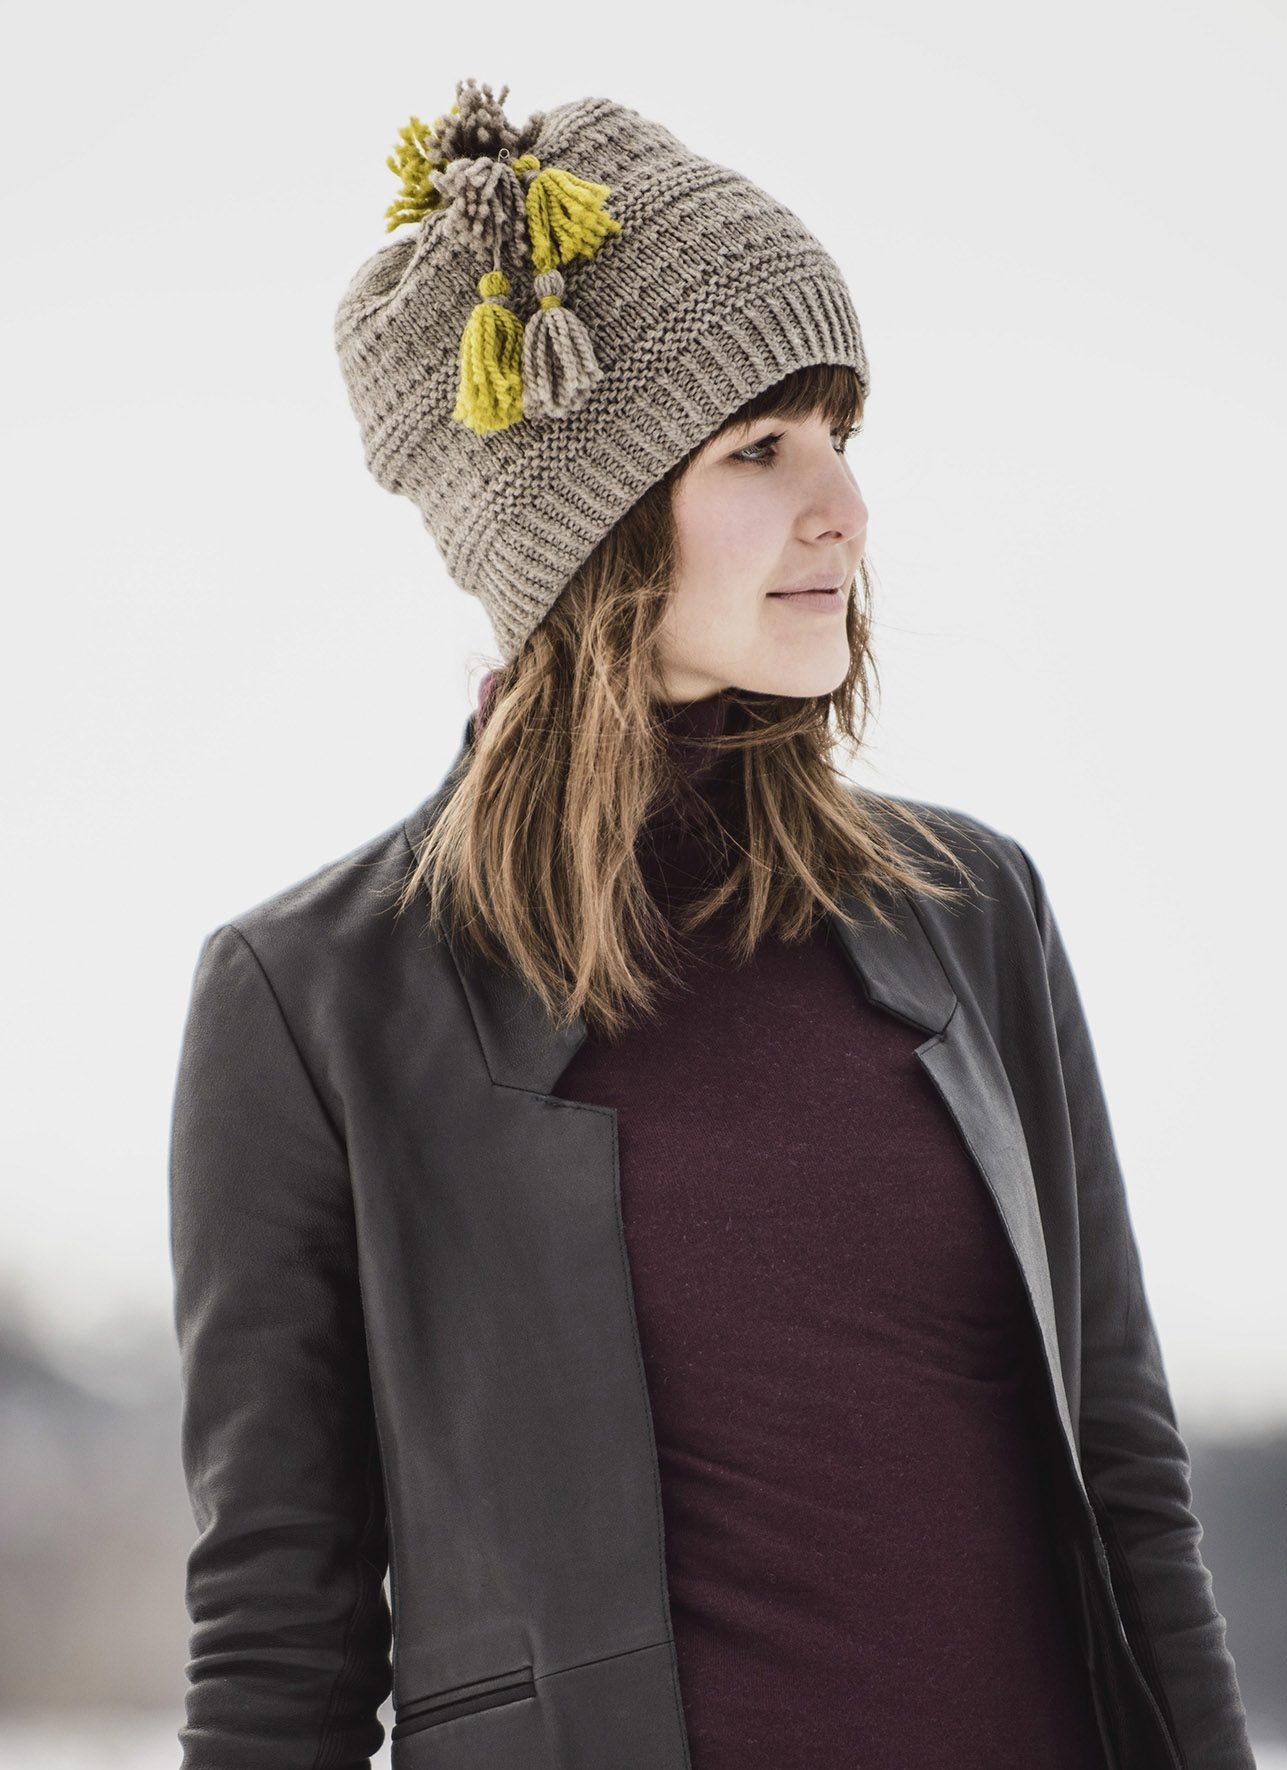 <strong> Tonka Bay Toque Pattern </strong><br>$9.00<br>.